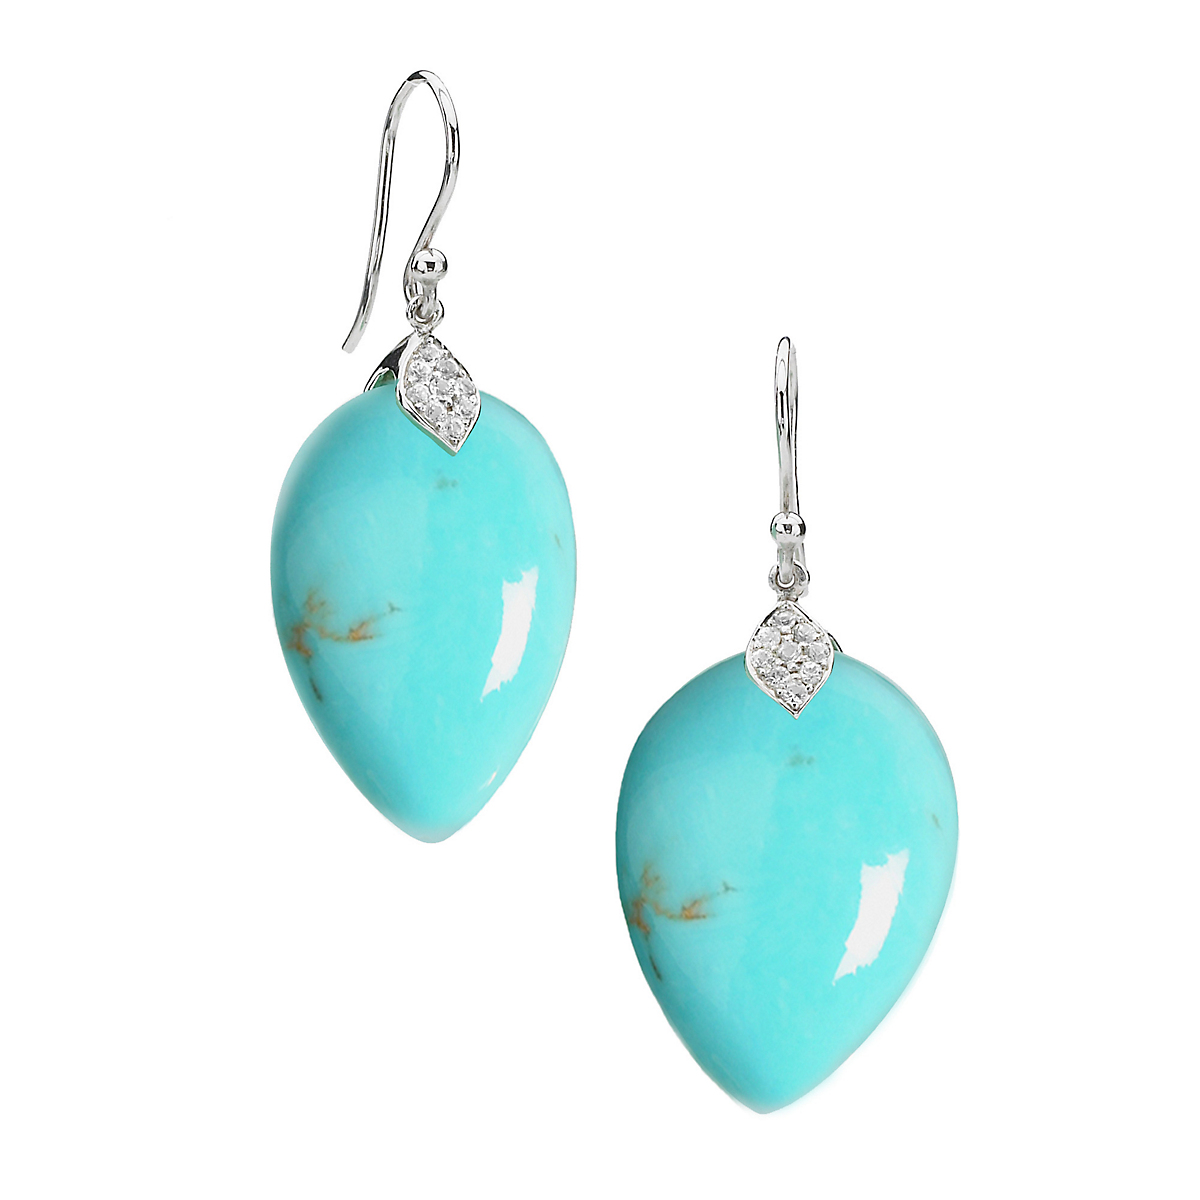 Elizabeth Showers Turquoise and White Sapphire Teardrop Earrings